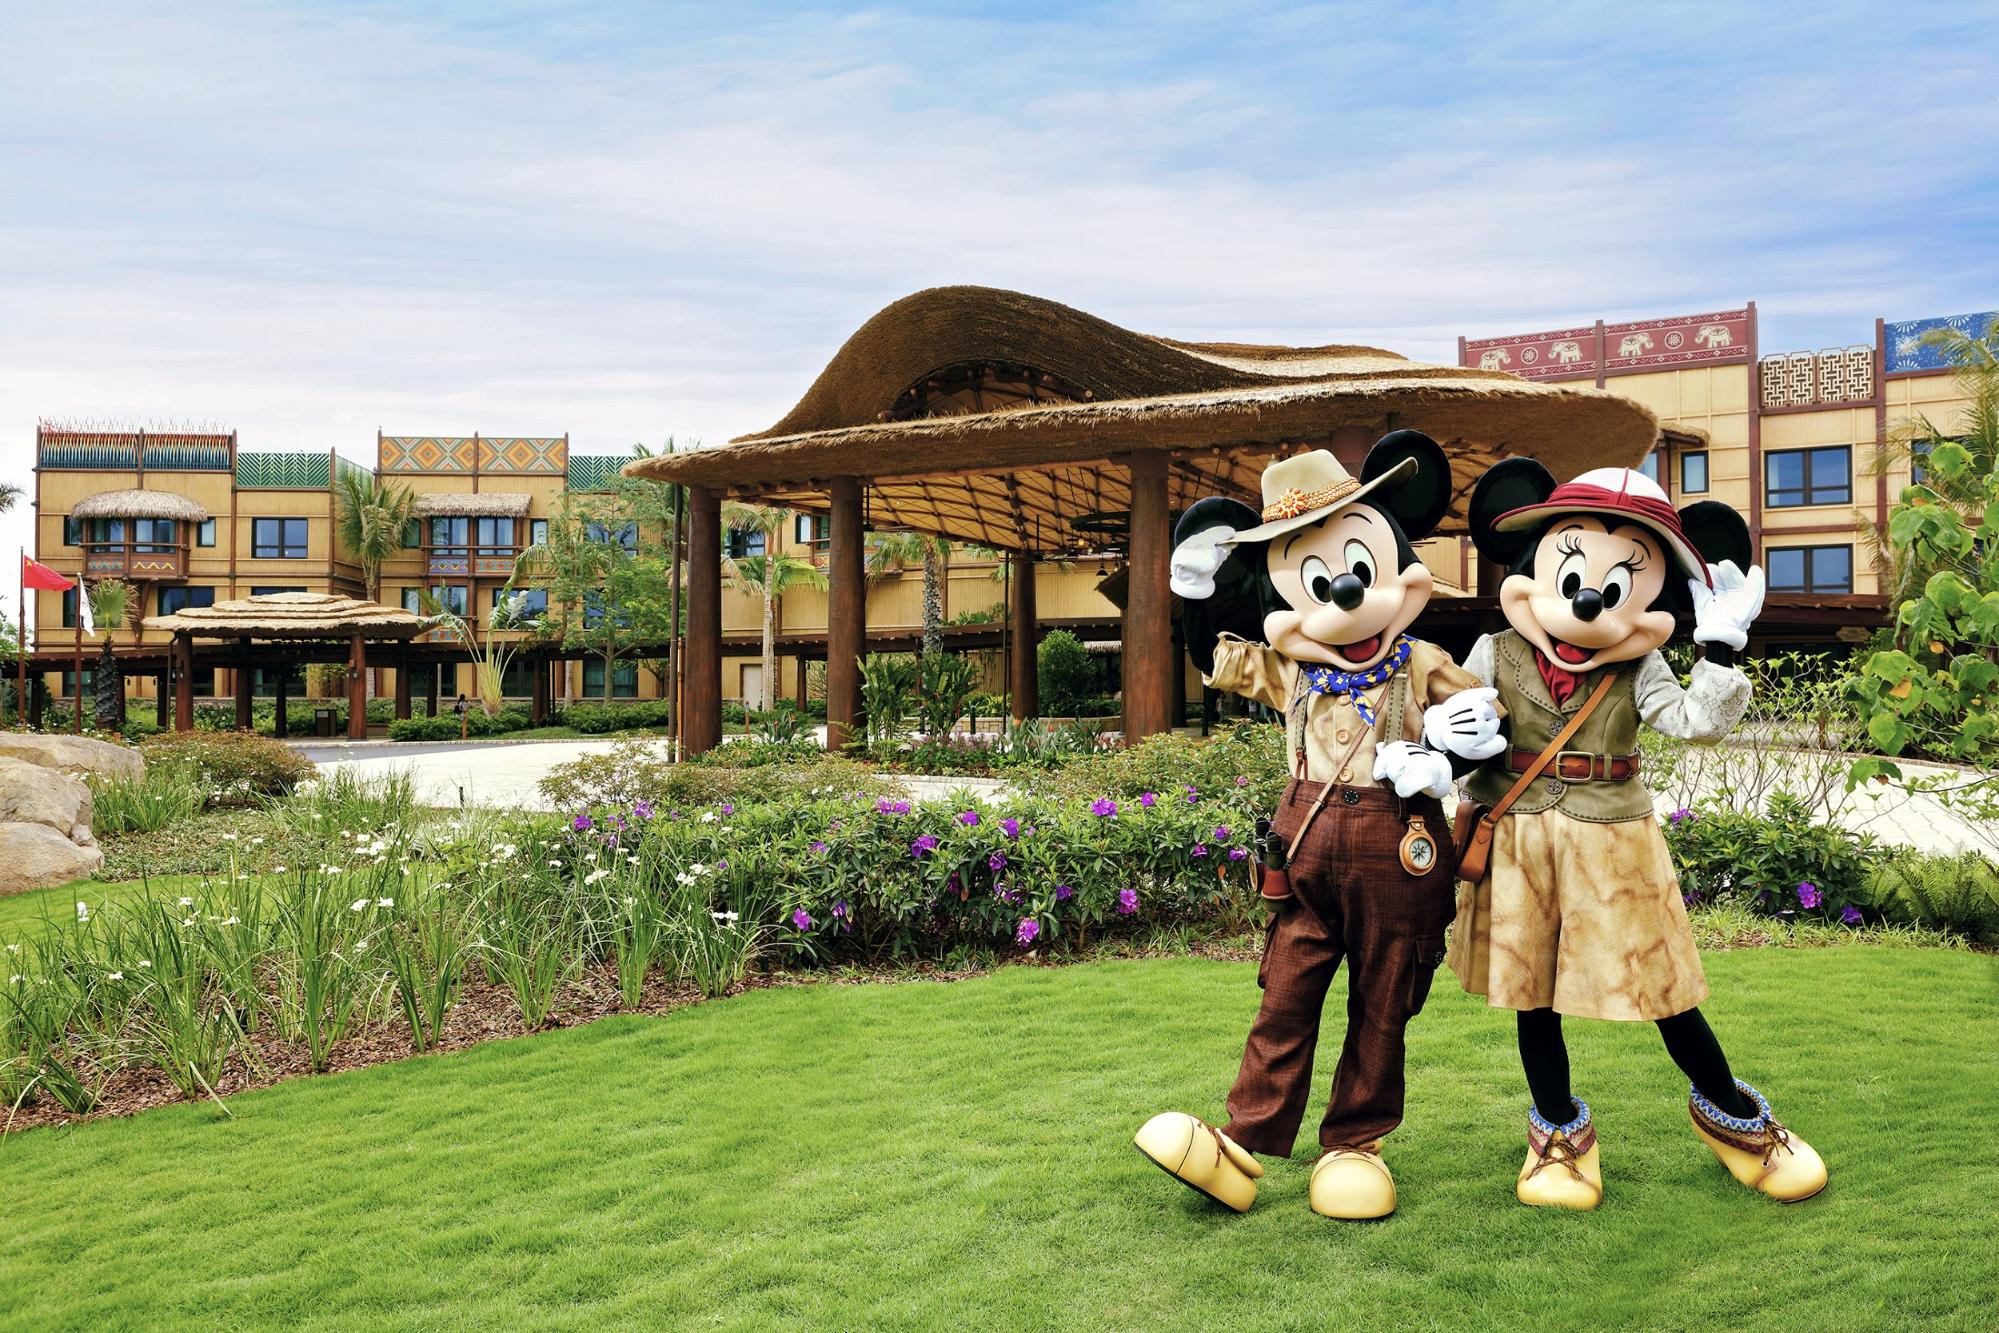 Why Staying In A Disneyland Resort With The Family Is Worth Every Voucher Hongkong Each Hotel Boasts An Abundance Of Its Own Facilities So There Wont Be Single Moment Boredom Throughout Your Stay Disney Explorers Lodge Alone